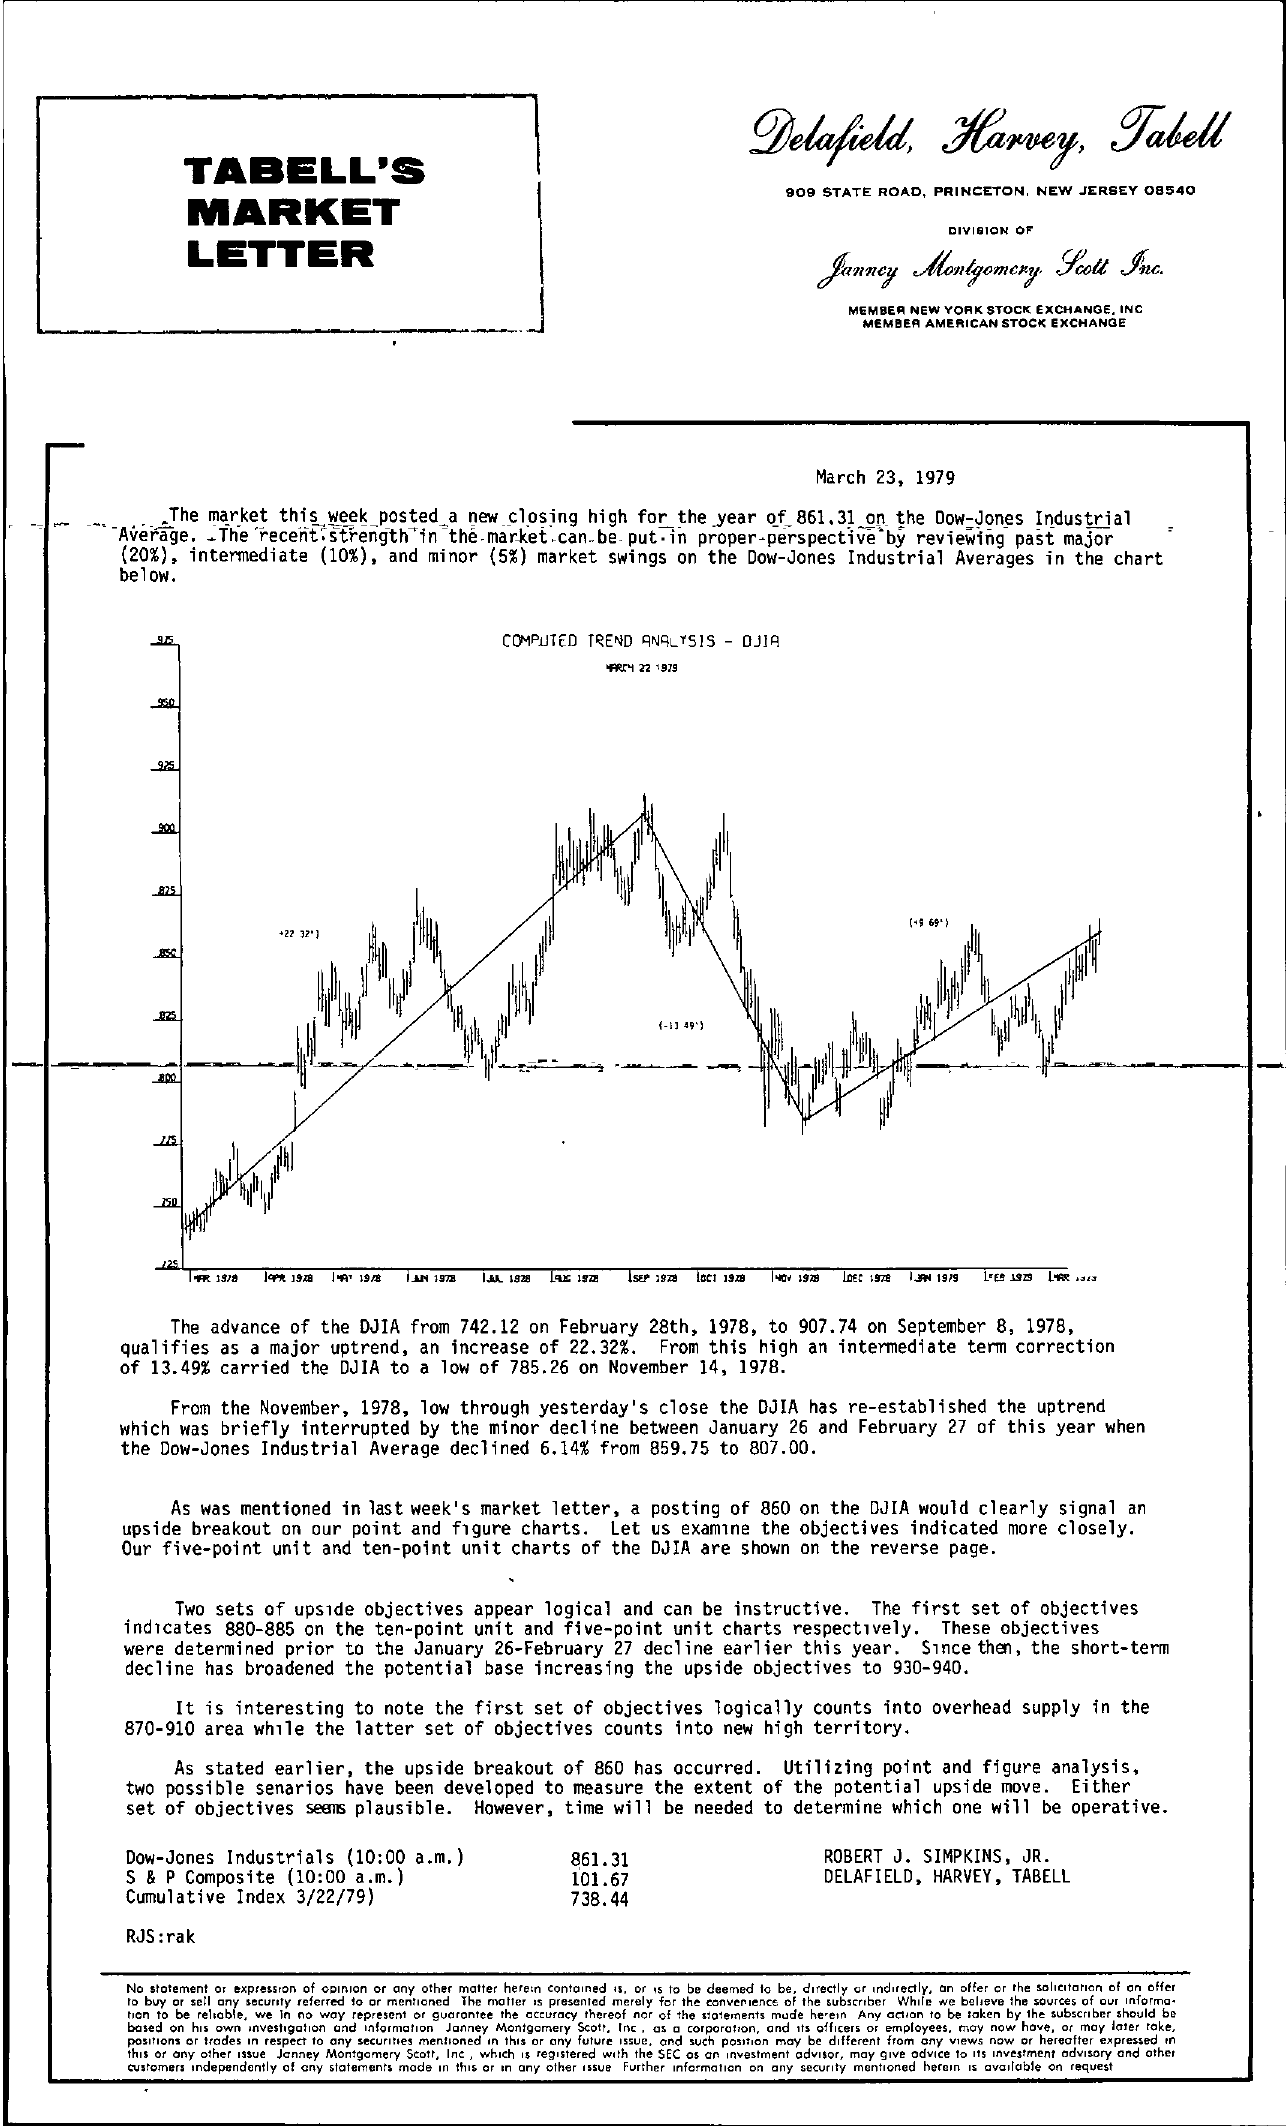 Tabell's Market Letter - March 23, 1979 page 1